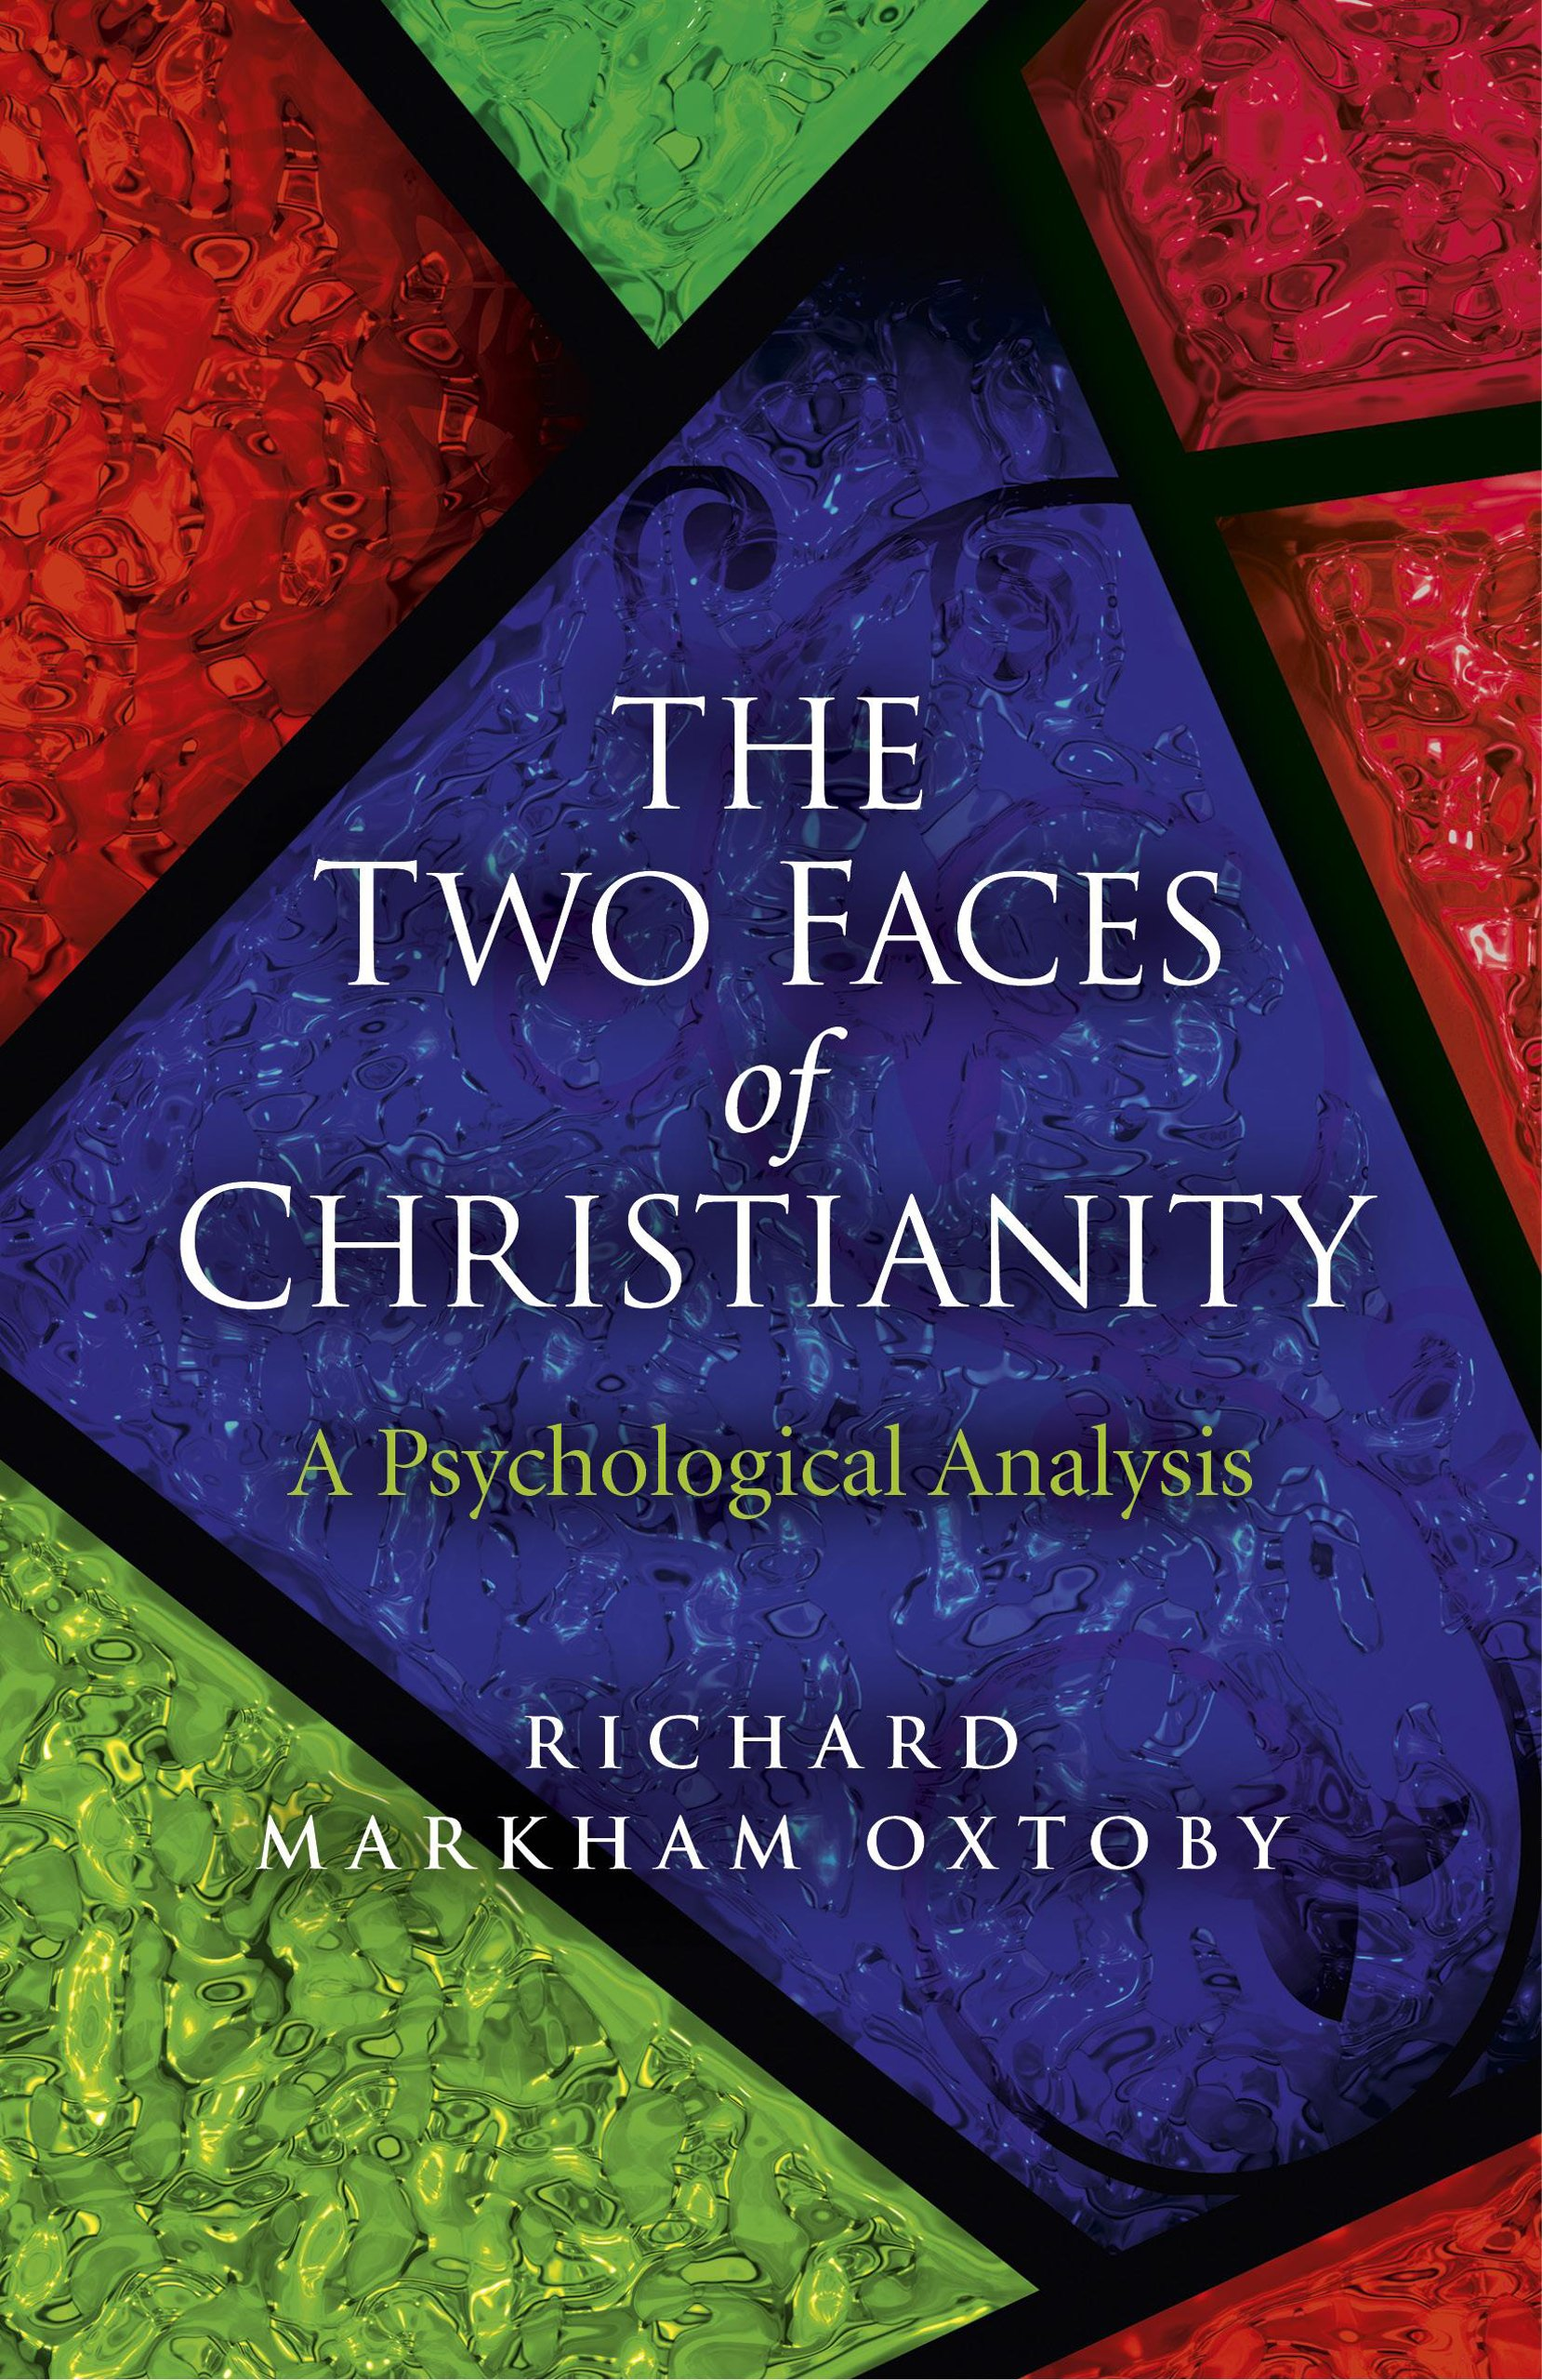 Book review: The Two Faces of Christianity